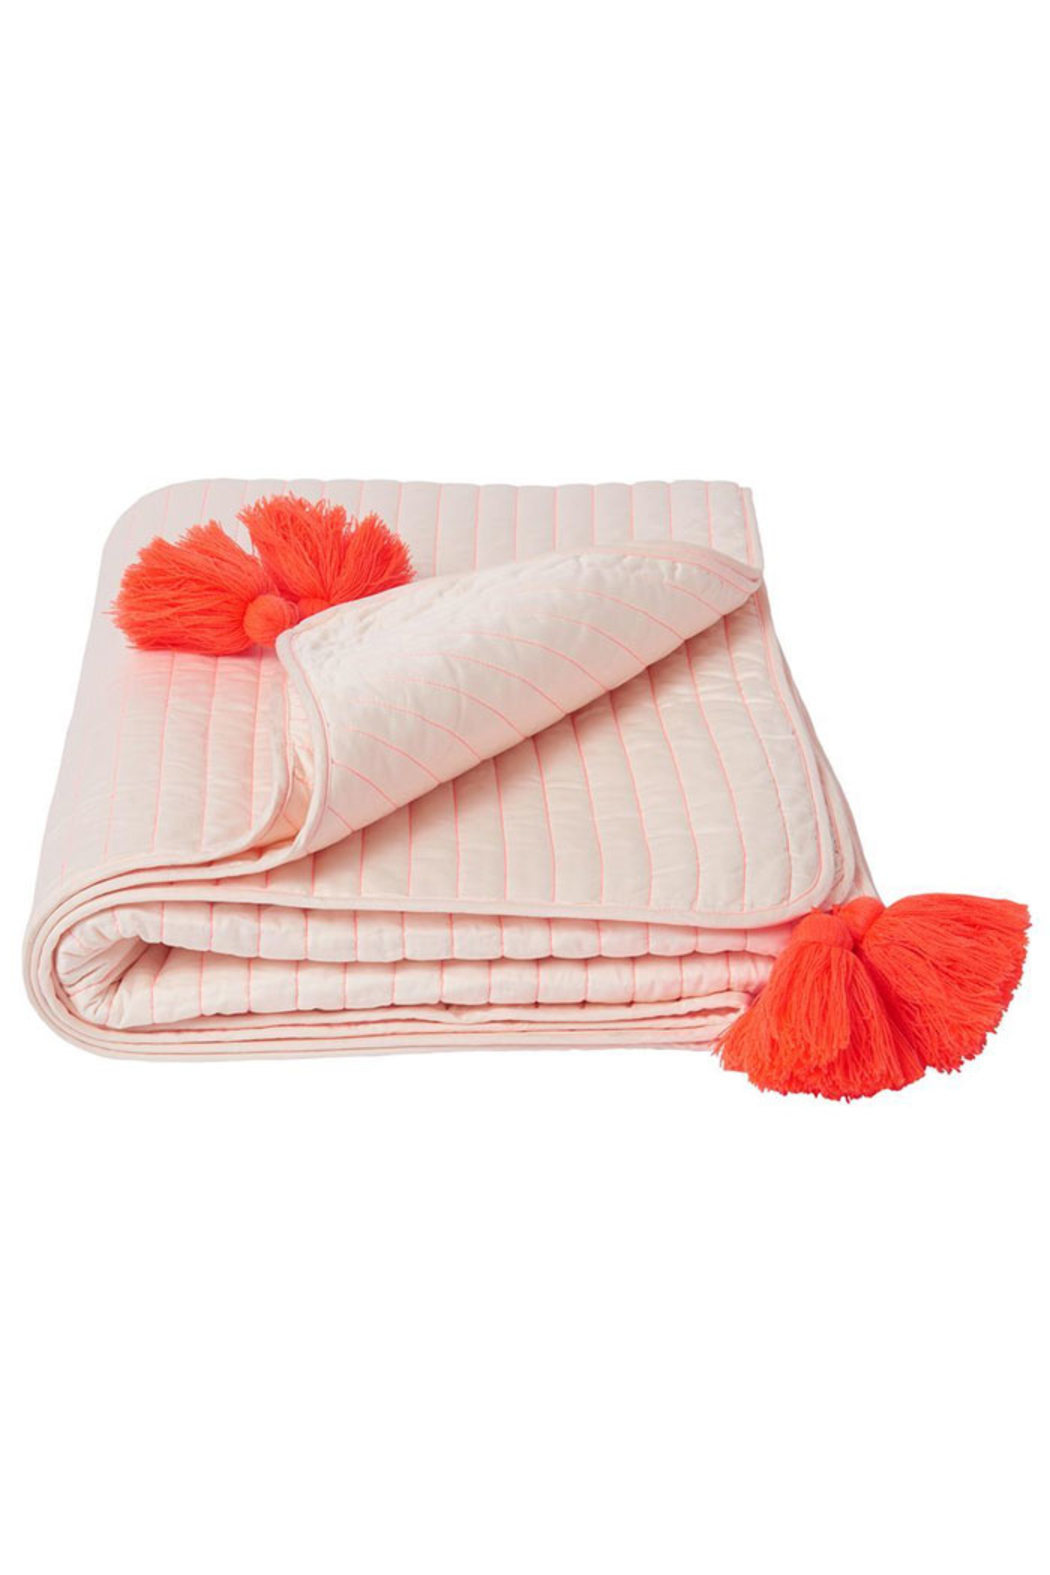 Meri Meri Coral Embroidered Quilt - Front Cropped Image